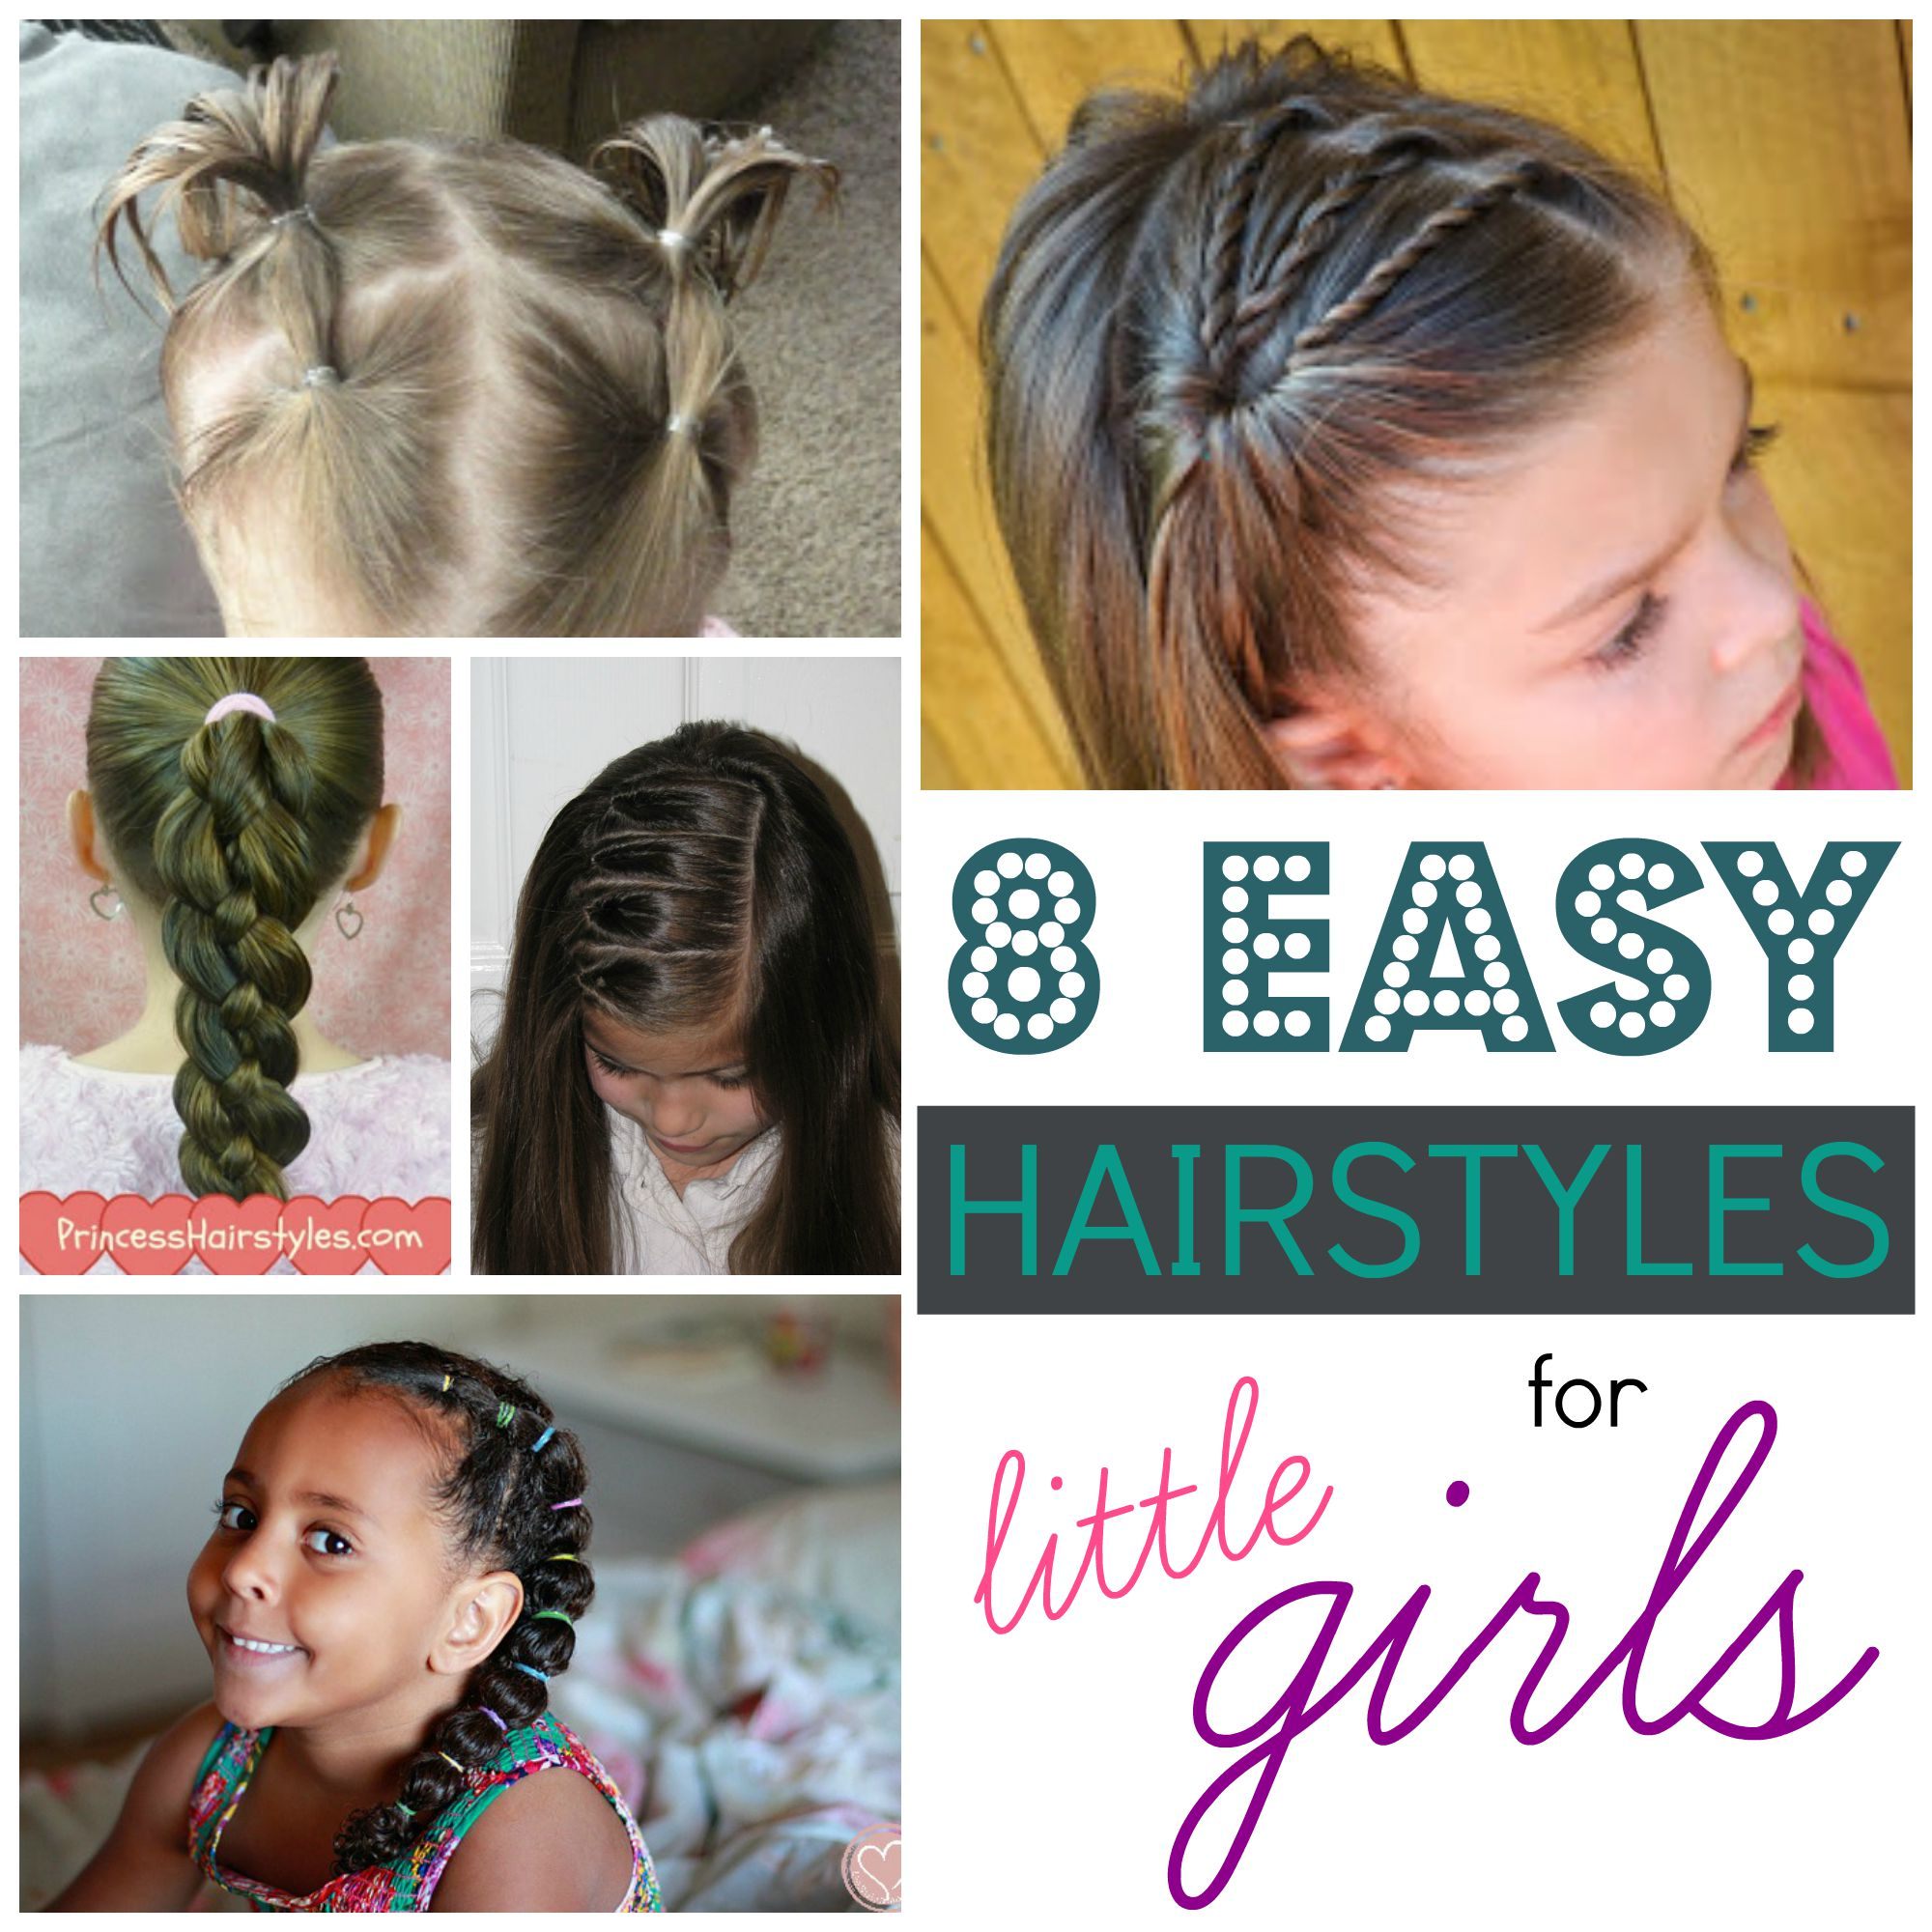 Find a cute new hairstyle for your little girl! 8 Easy Hairstyles for little girls